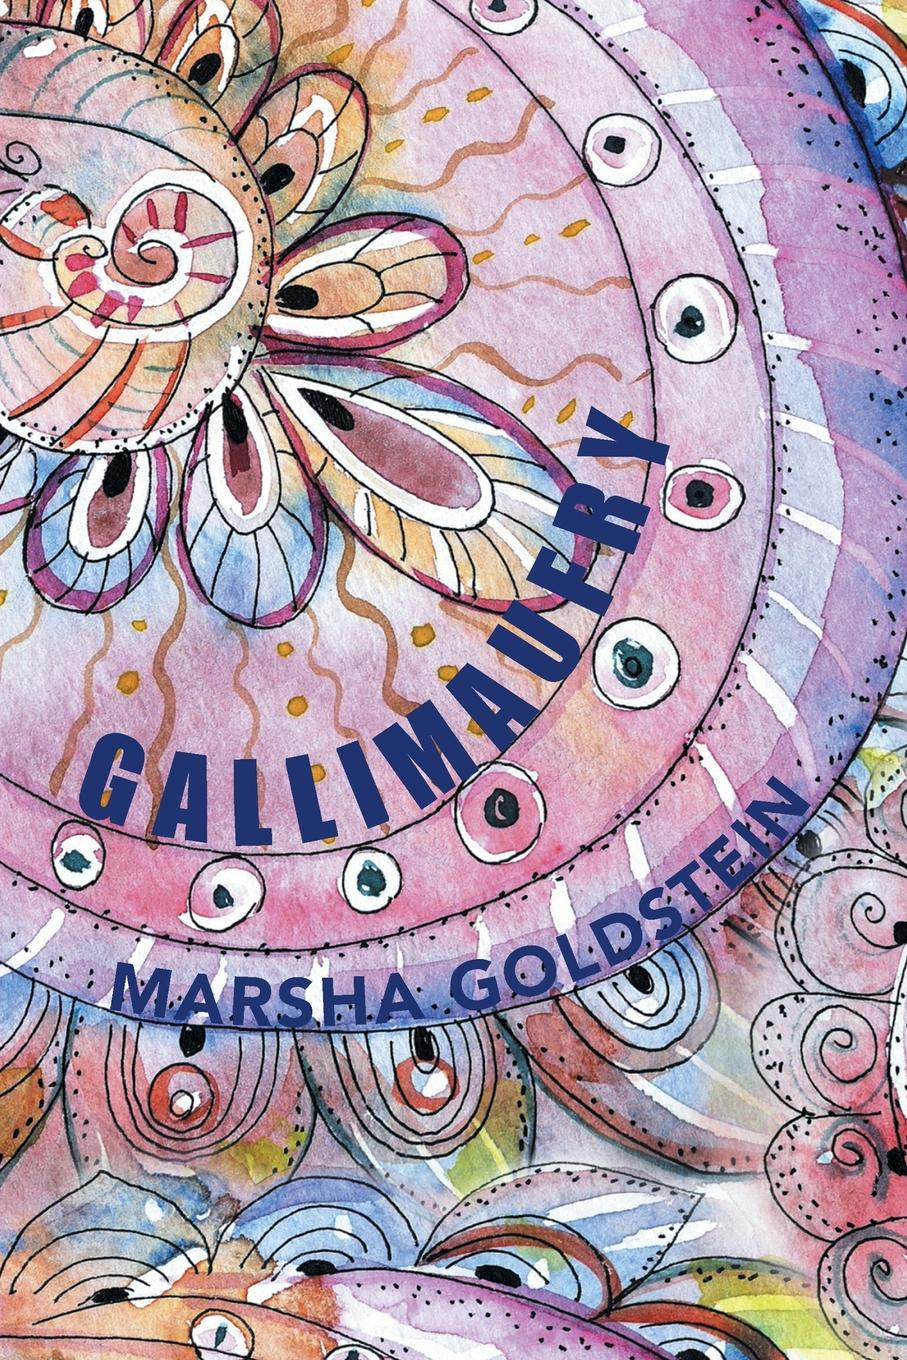 Marsha Goldstein GALLIMAUFRY. A COLLECTION OF SHORT STORIES, POEMS, LYRICS, MEMOIRS AND RANTS brittany tempel pretty bird a collection of poems and short stories